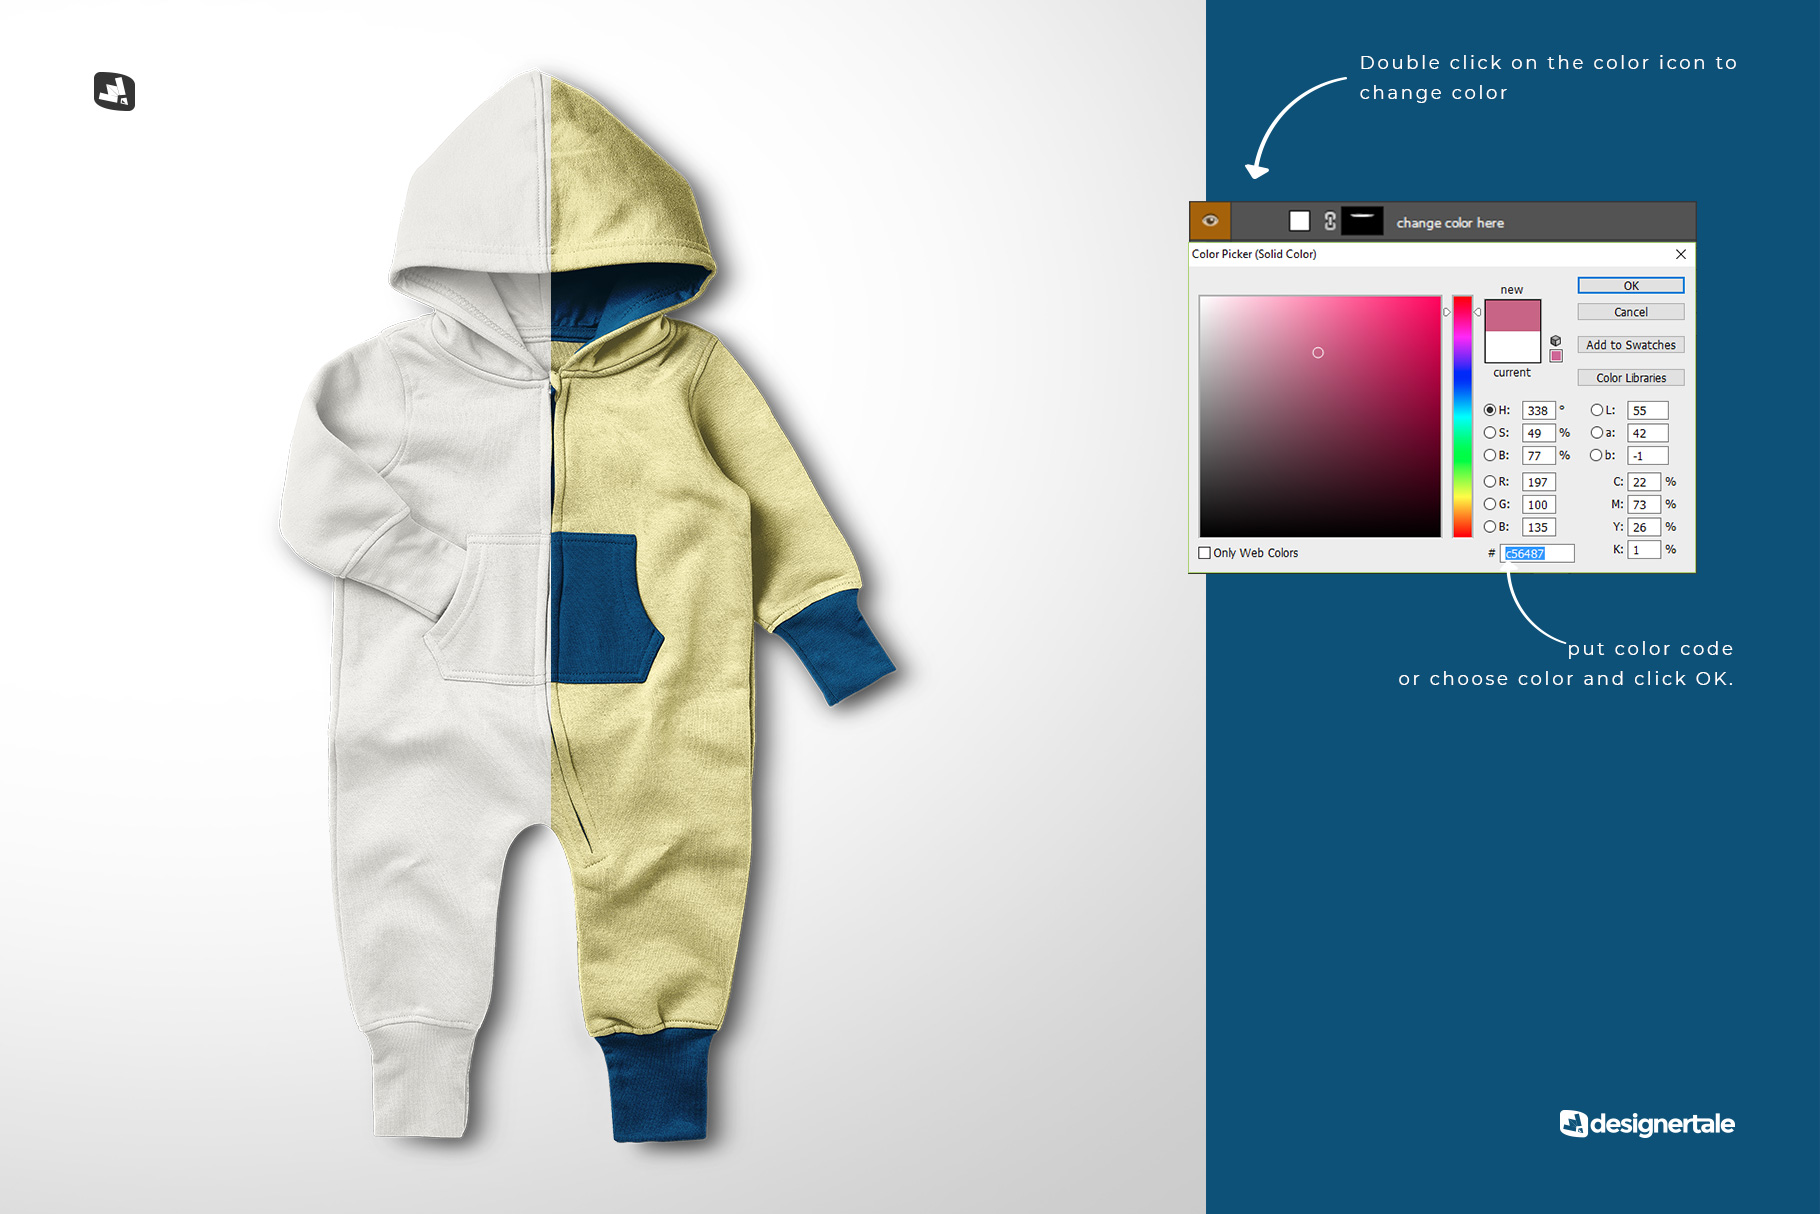 change color of the baby hoodie jumpsuit mockup